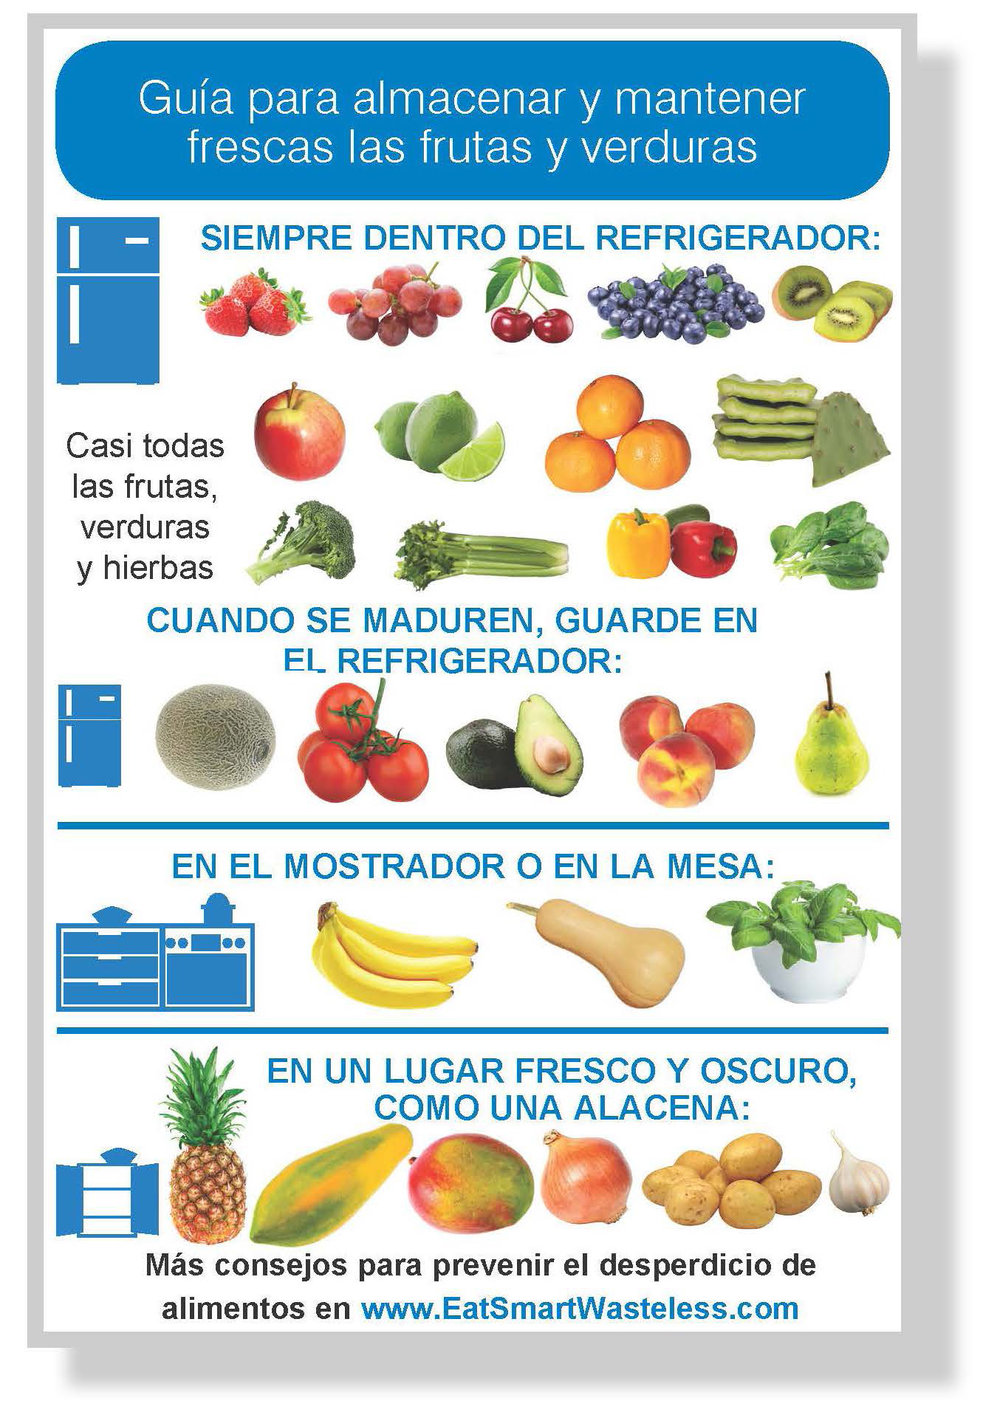 Storage guide magnet_Spanish_thumbnail.jpg